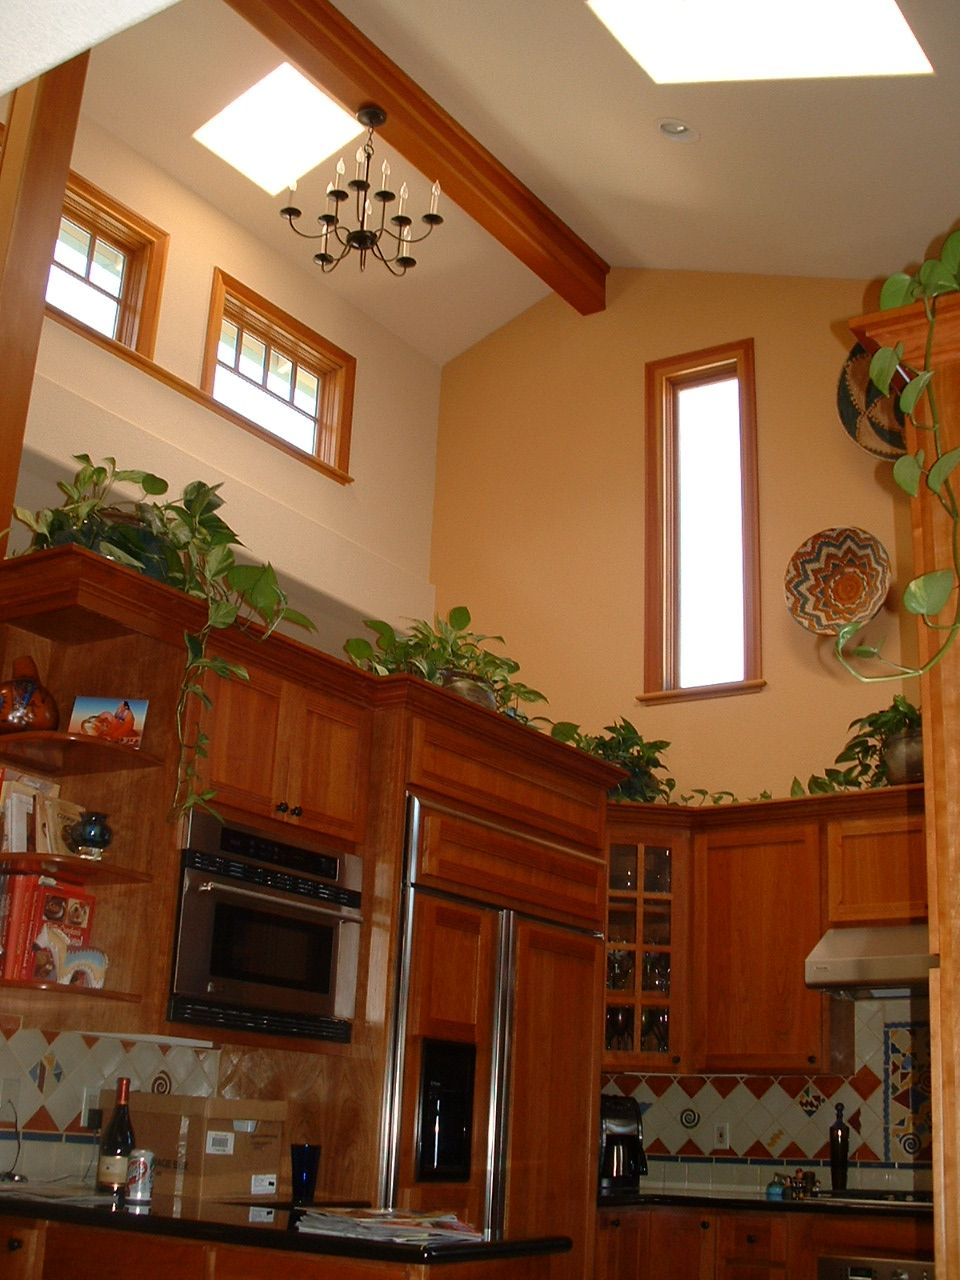 Plants For Kitchen To Decorate It: Pin By R.I. Axelrod On Interior Decorating/Decoración De